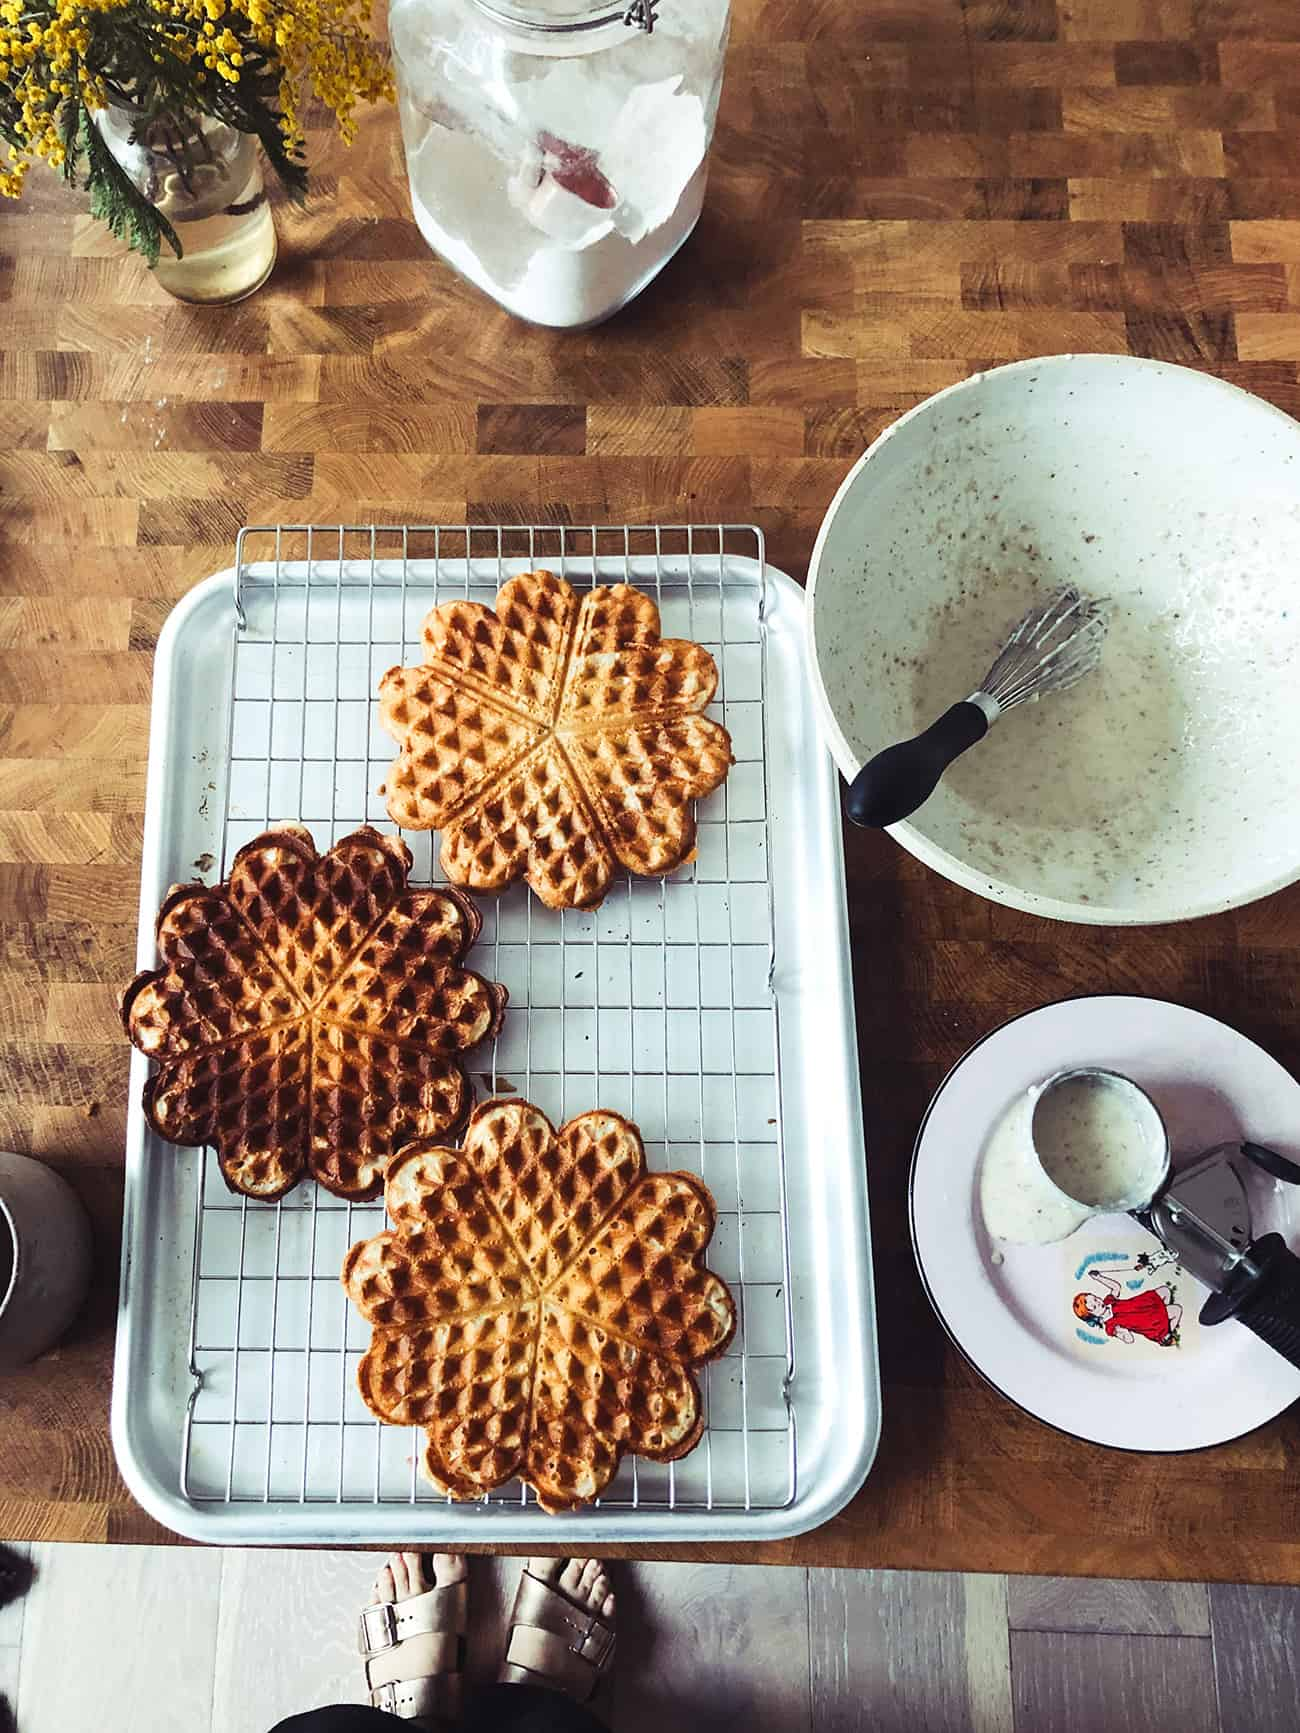 a tray of vegan waffles and a bowl of waffle batter on a counter top